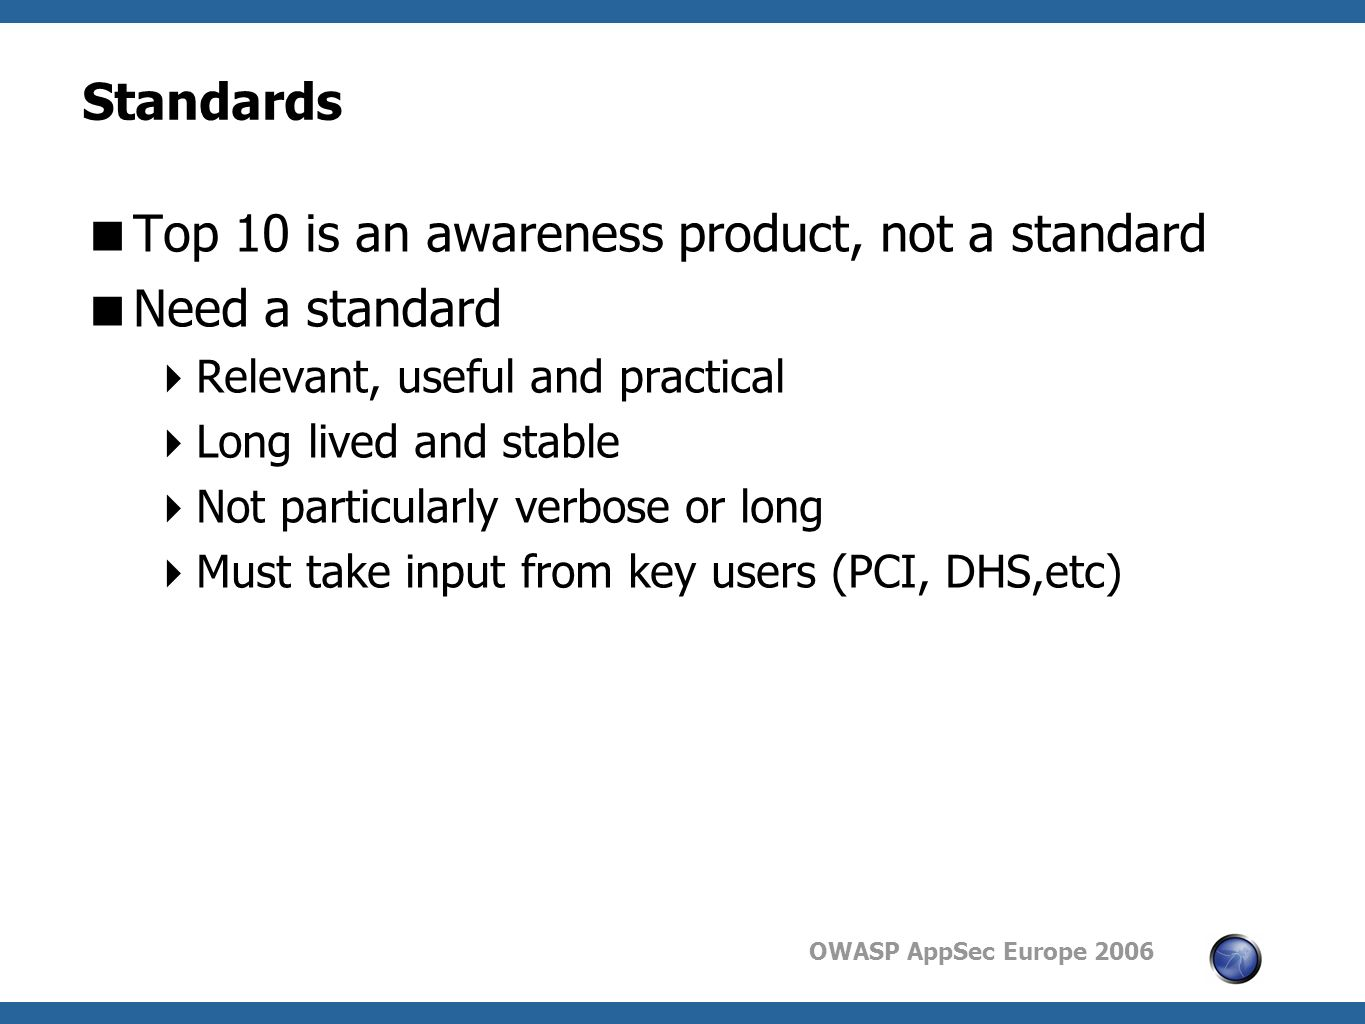 OWASP AppSec Europe 2006 Standards  Top 10 is an awareness product, not a standard  Need a standard  Relevant, useful and practical  Long lived and stable  Not particularly verbose or long  Must take input from key users (PCI, DHS,etc)